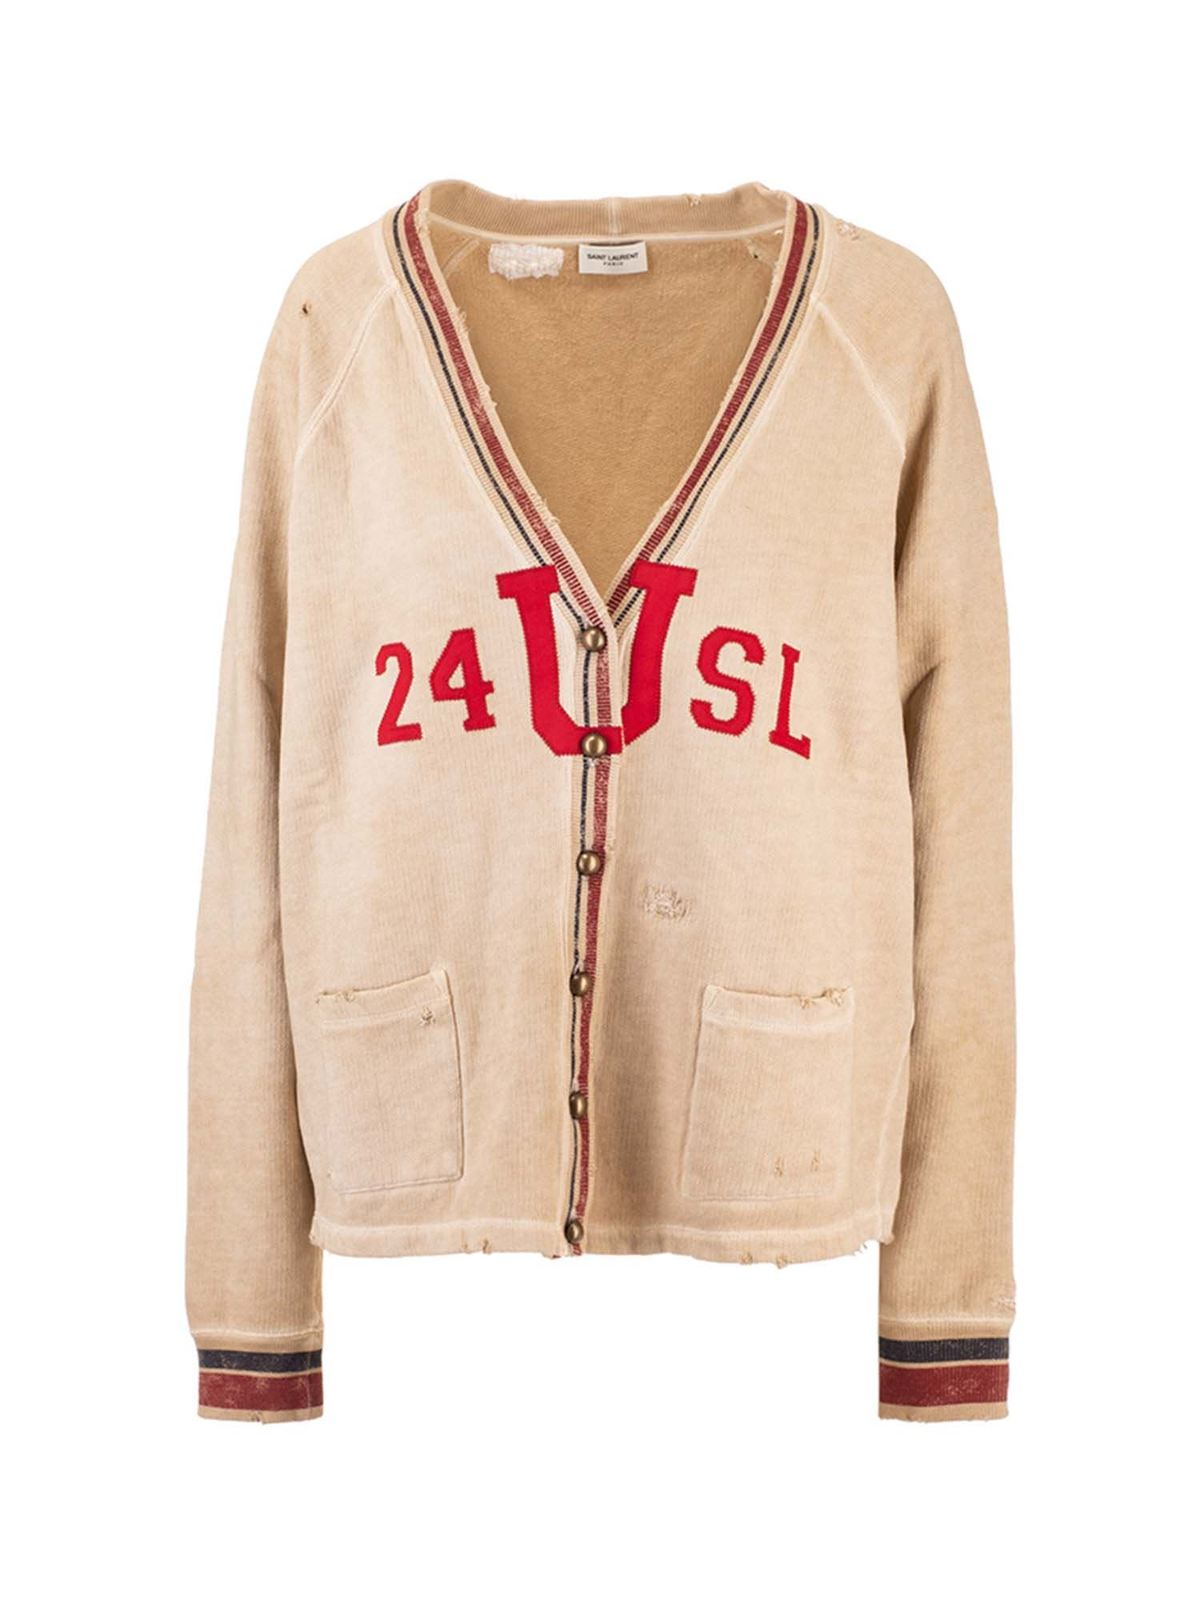 SAINT LAURENT VINTAGE EFFECT CARDIGAN IN BEIGE